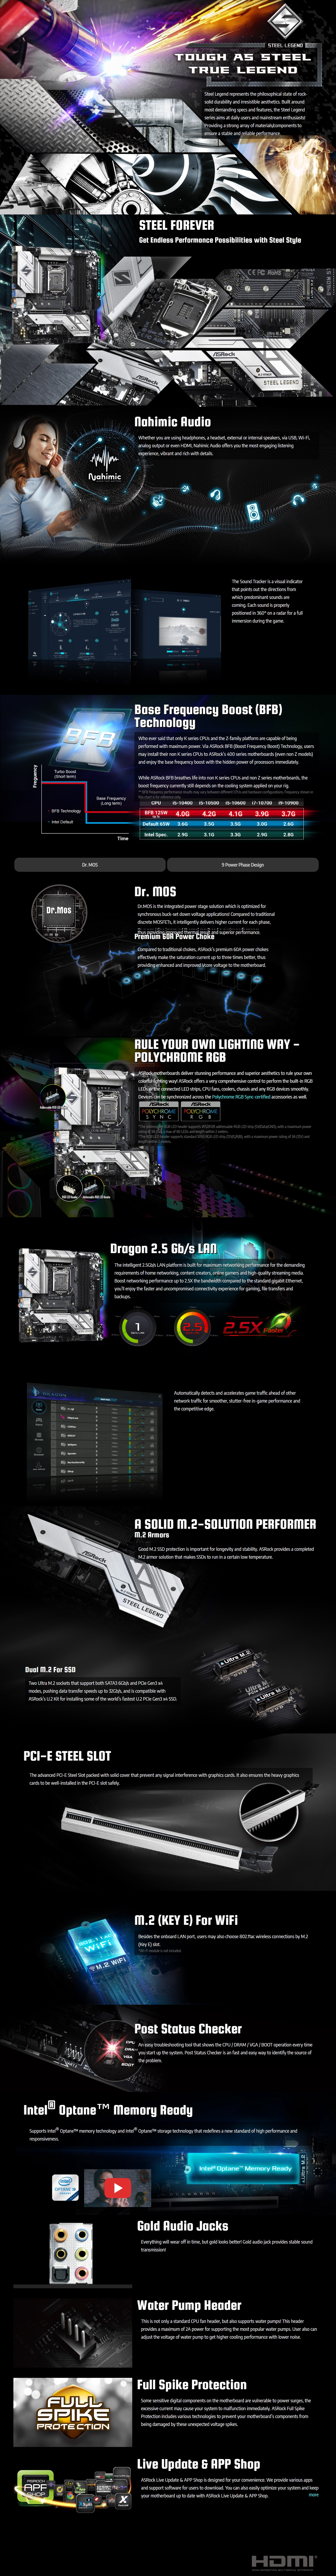 A large marketing image providing additional information about the product ASRock B460M Steel Legend LGA1200 mATX Desktop Motherboard - Additional alt info not provided